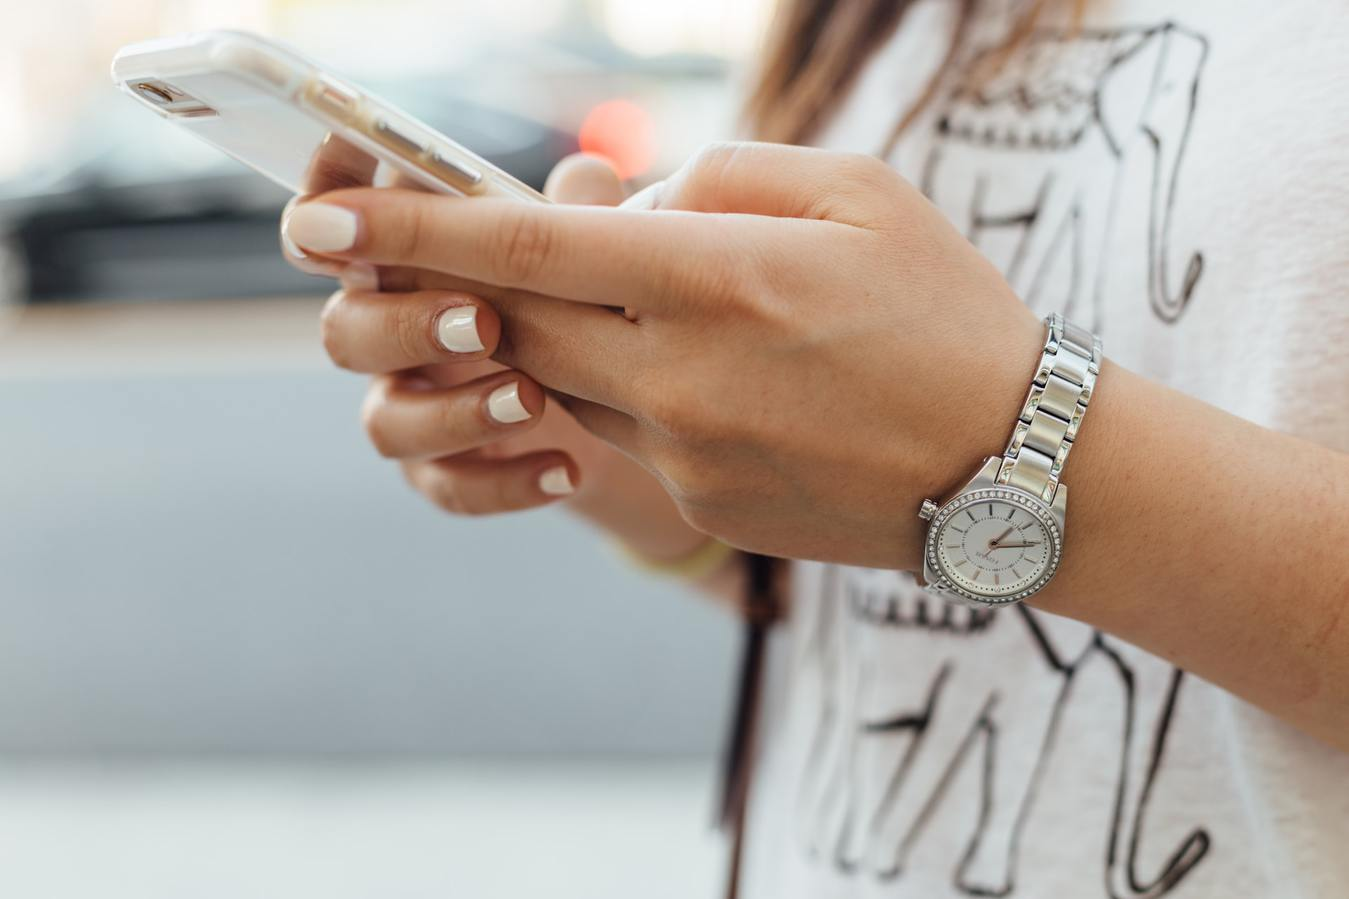 Woman holding a smartphone, forearms with watch